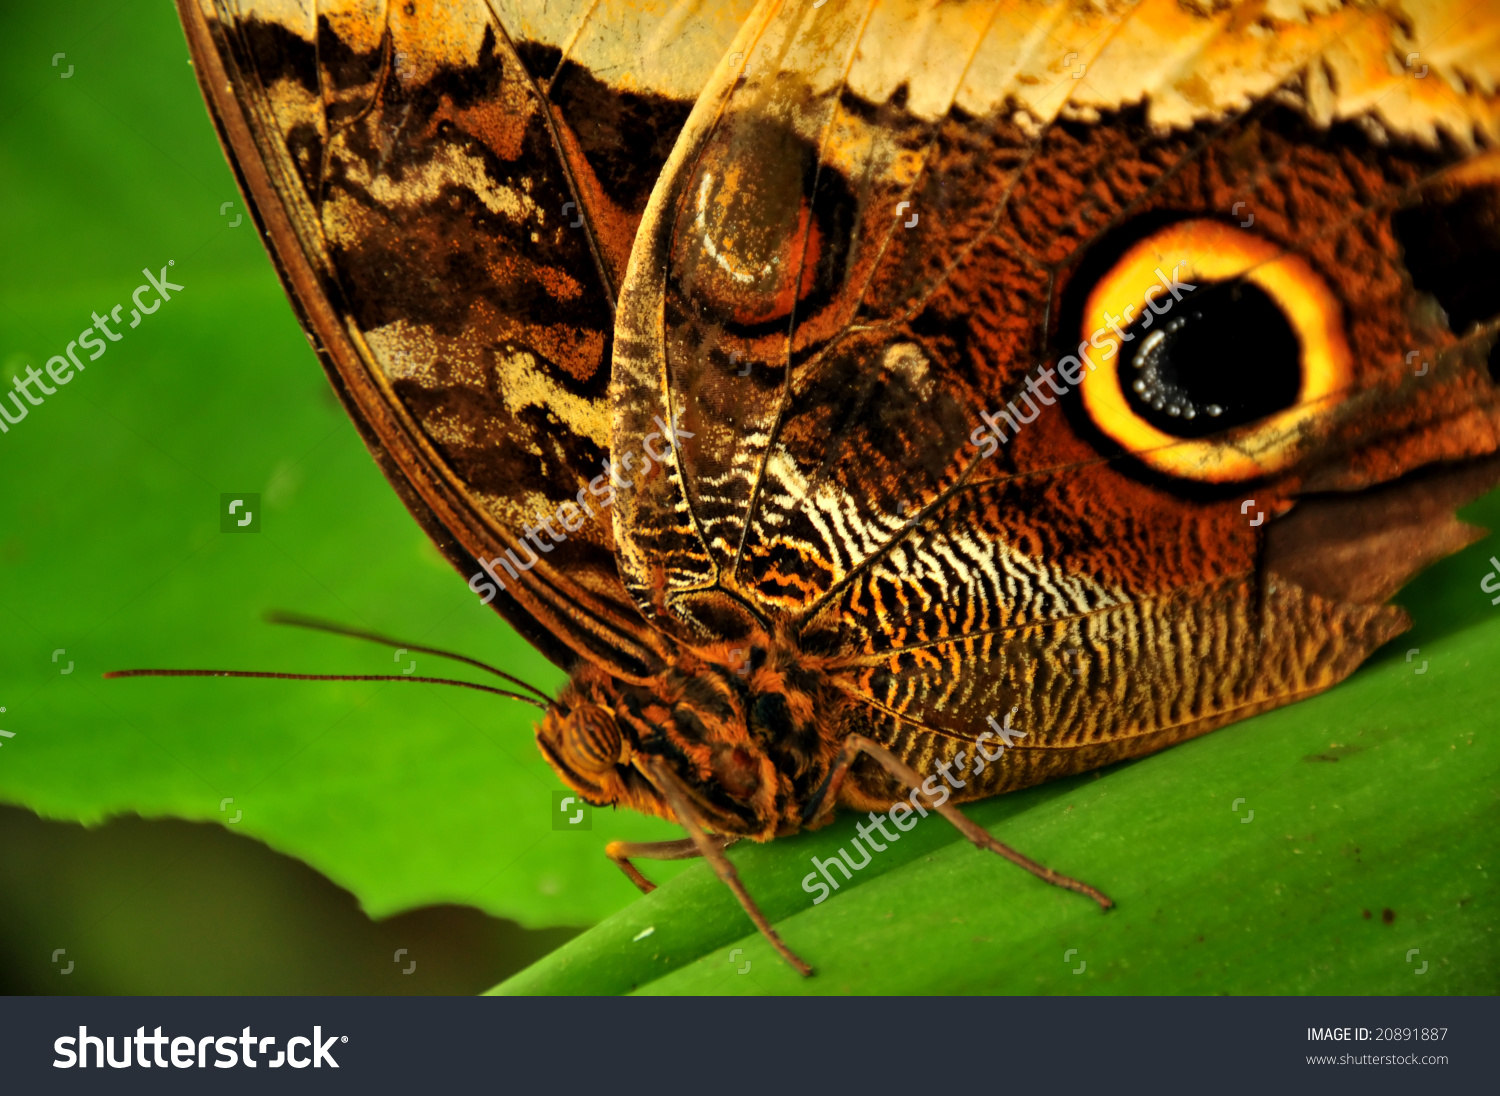 Close Owl Butterfly Caligo Eurilochus Large Stock Photo 20891887.